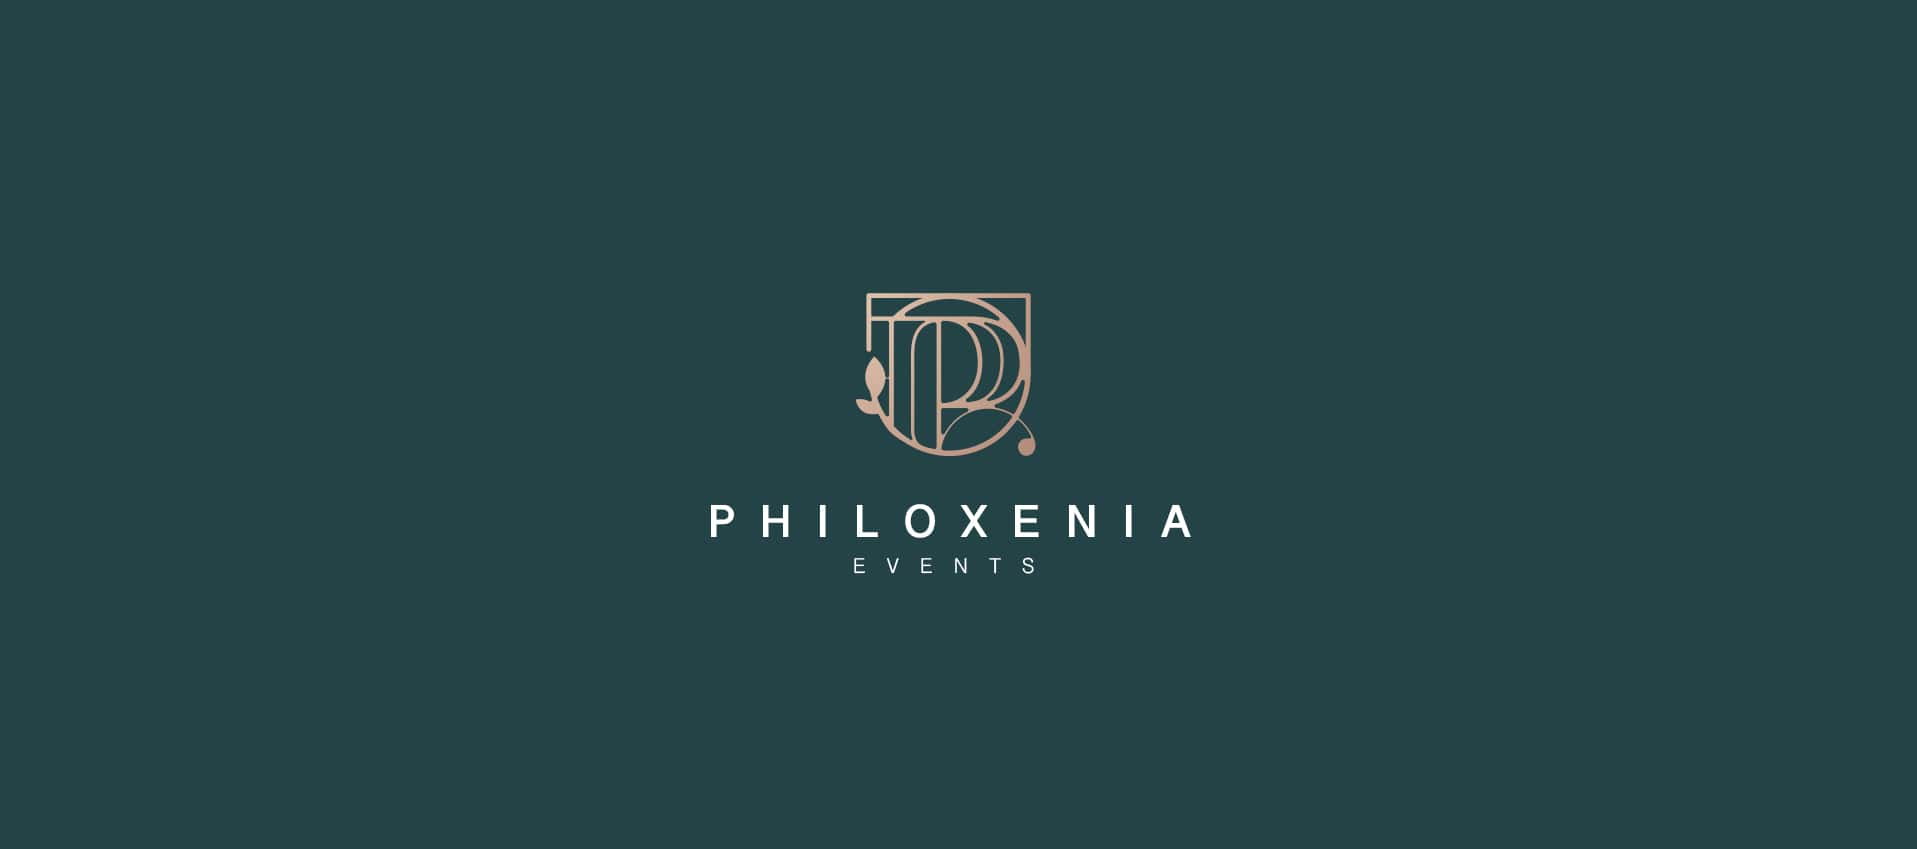 brand design for Philoxenia